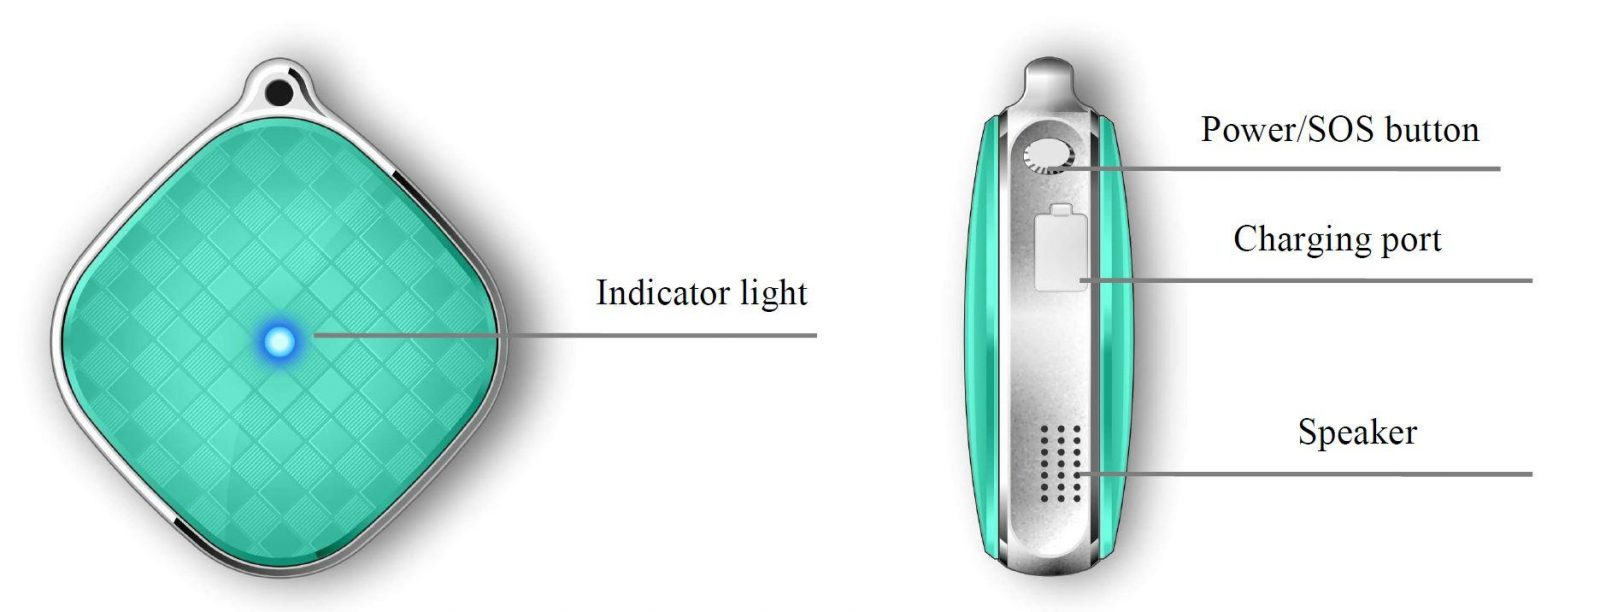 Pendant Gps Tracker For Elderly Dementia Patients on tracking device chip